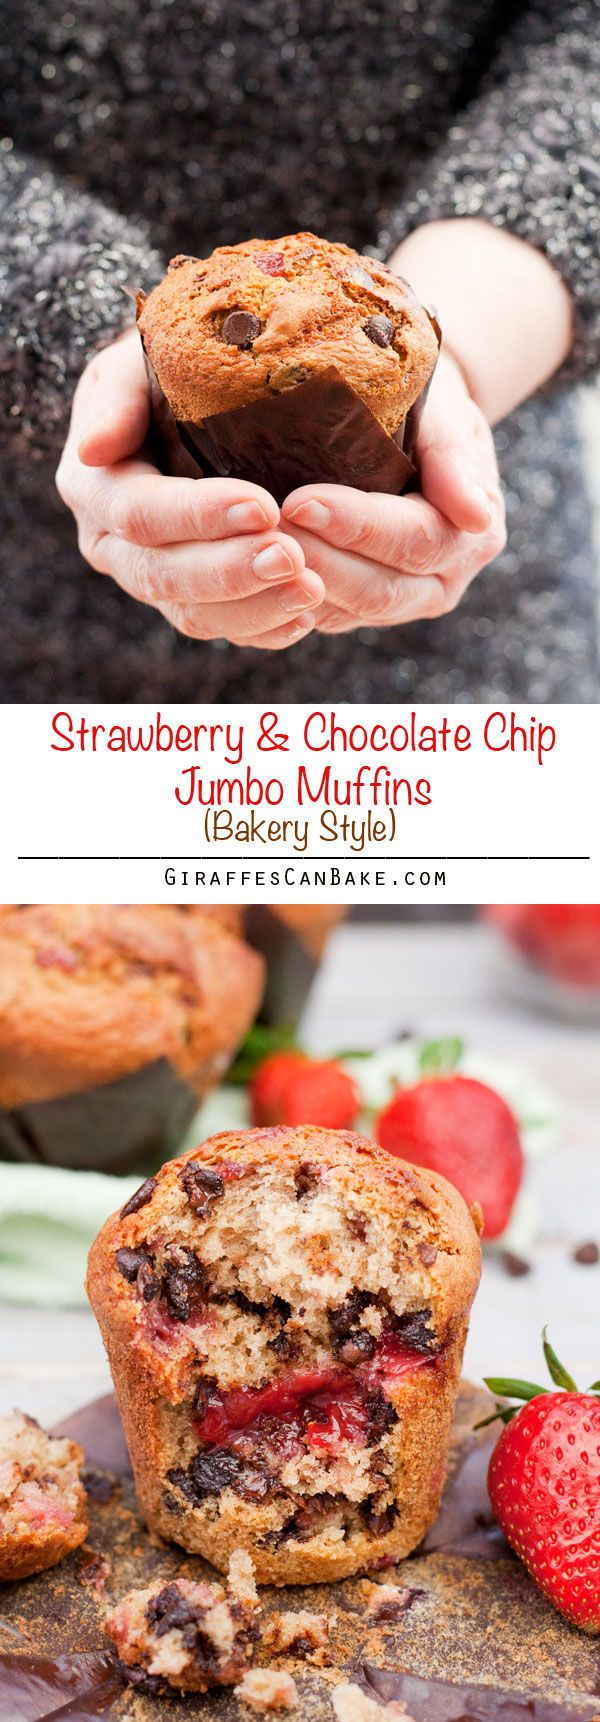 Strawberry Chocolate Chip Jumbo Muffins - Really moist bakery style muffins full of chocolate chips and a gooey strawberry sauce centre. These Strawberry Chocolate Chip Jumbo Muffins are super-sized, absolutely delicious and taste just like they came from a fancy bakery.